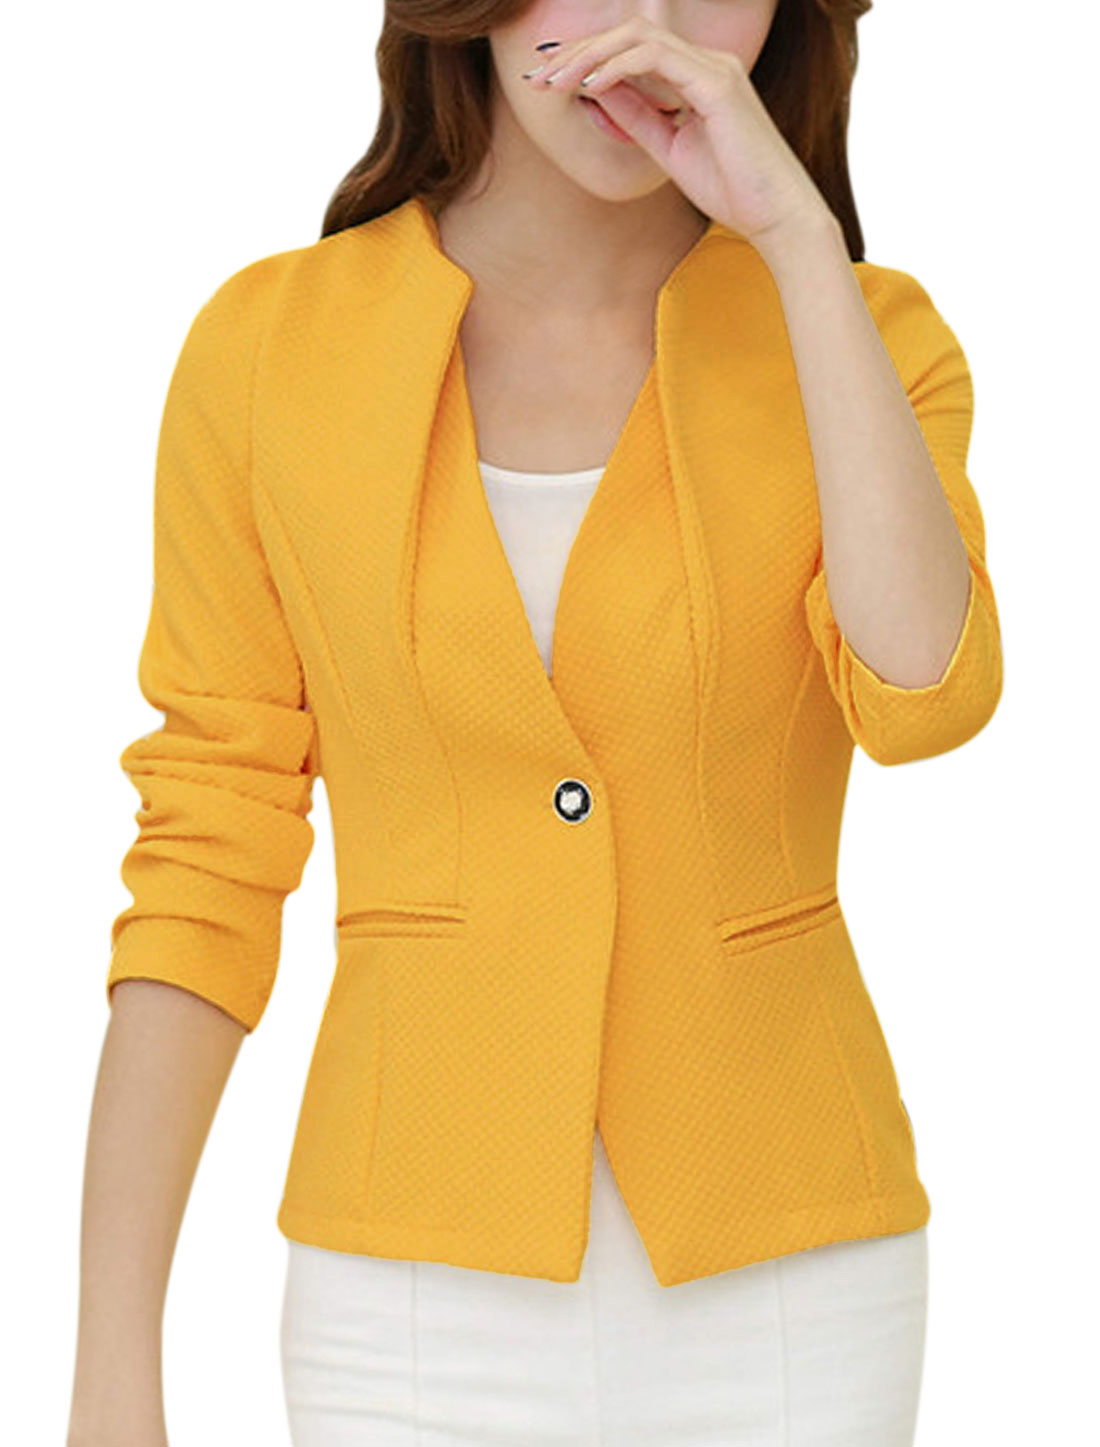 Padded Shoulder One Button Closed Yellow Blazer Jacket for Lady S